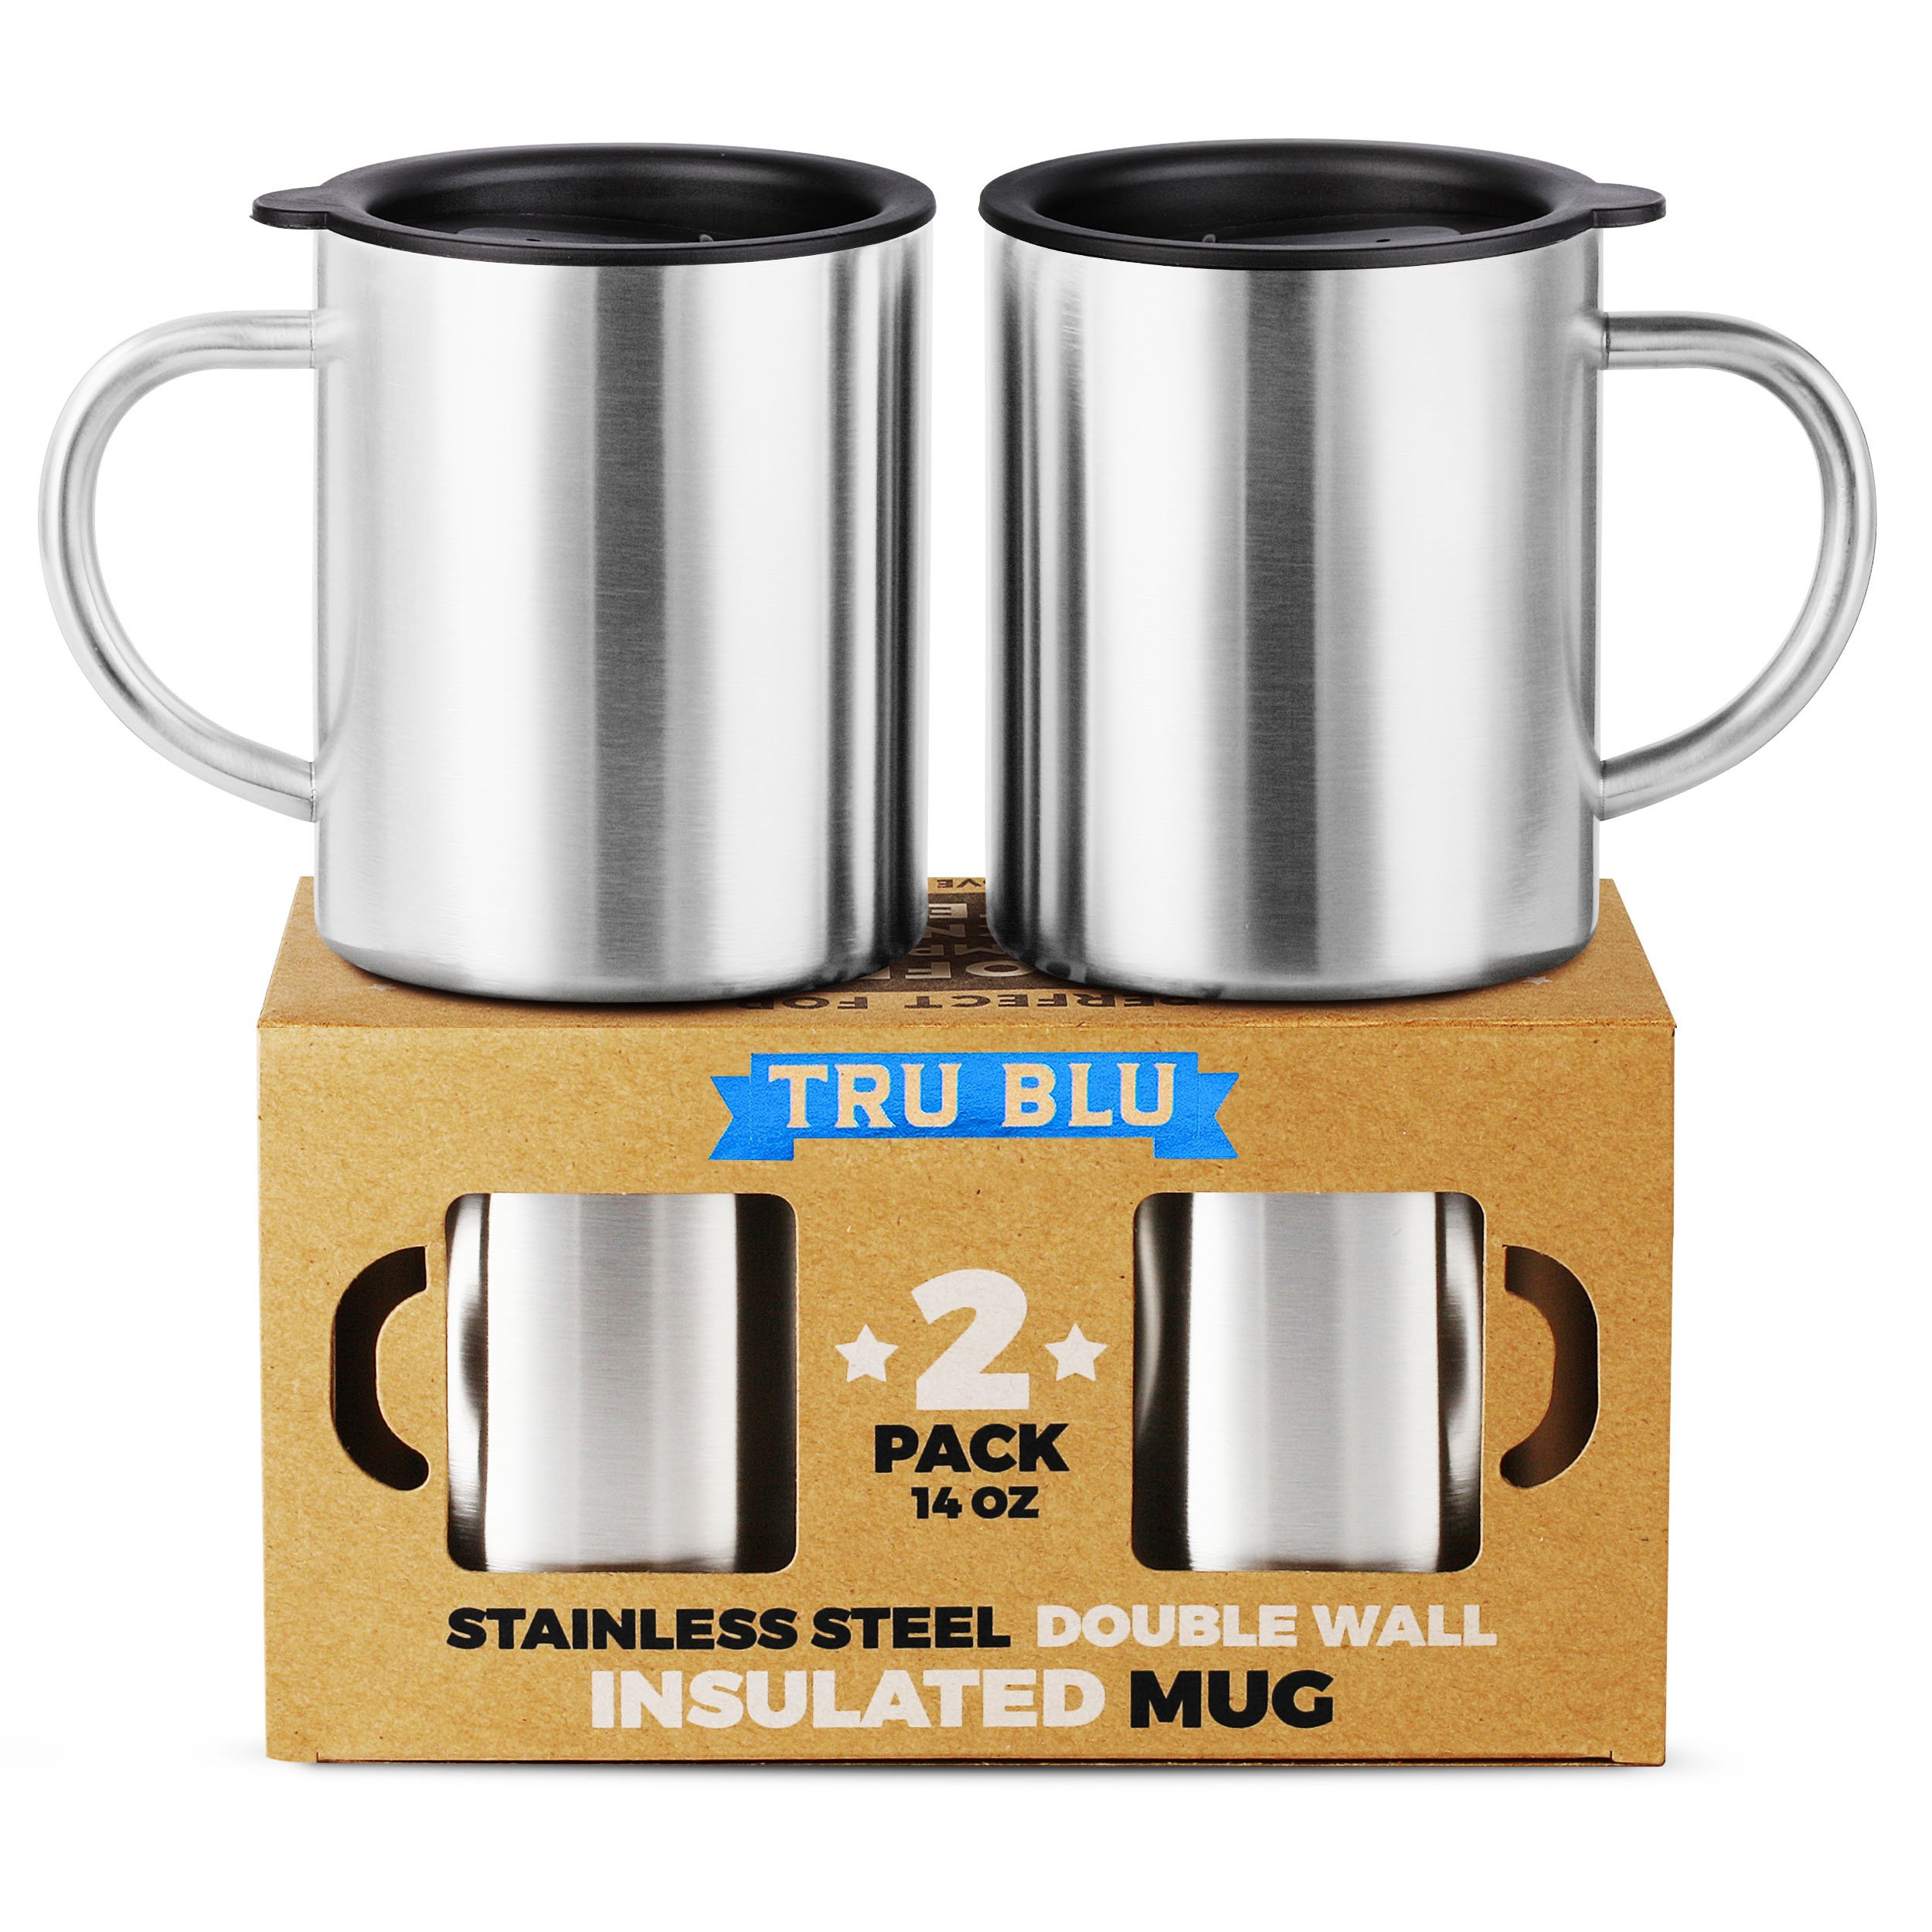 Stainless Steel Coffee Mug with Lid, Set of 2 – 14 oz Premium Double Wall Insulated Travel Cup, Metal Mug with Handle – Shatterproof, BPA Free, Dishwasher Safe, Tea, Beer (14oz)